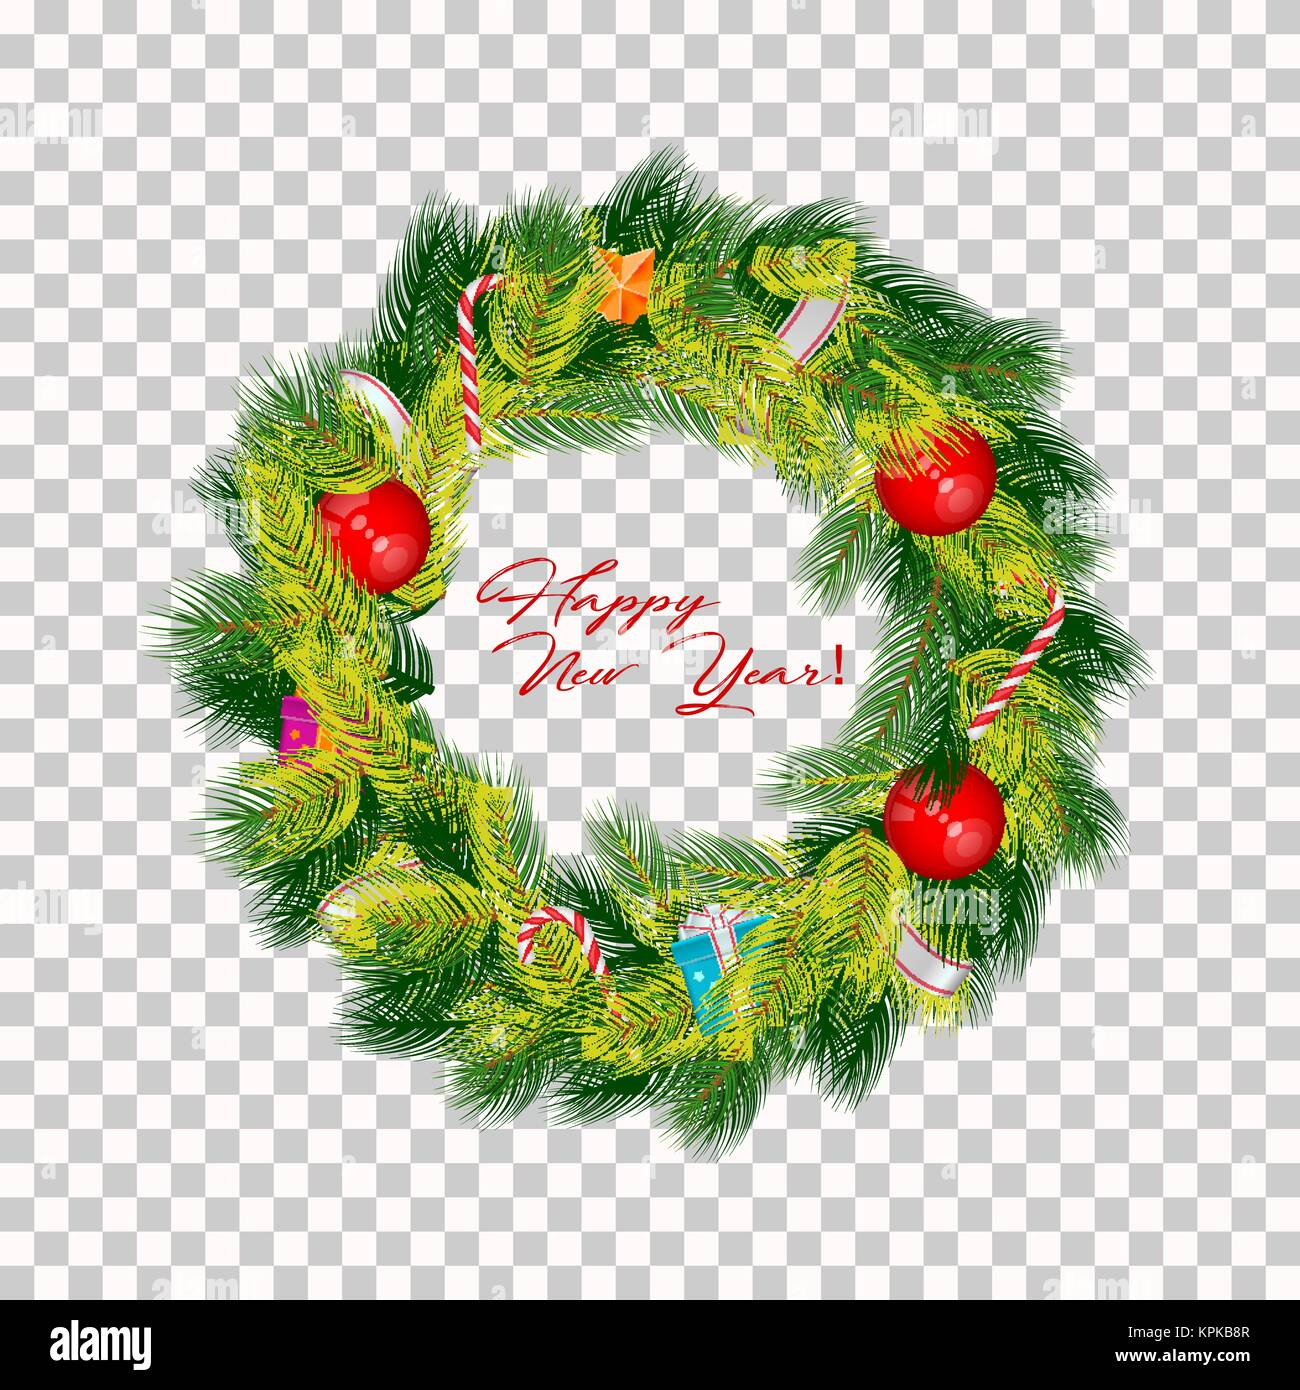 Realistic Vector Christmas Wreath Isolated On Transparent Background